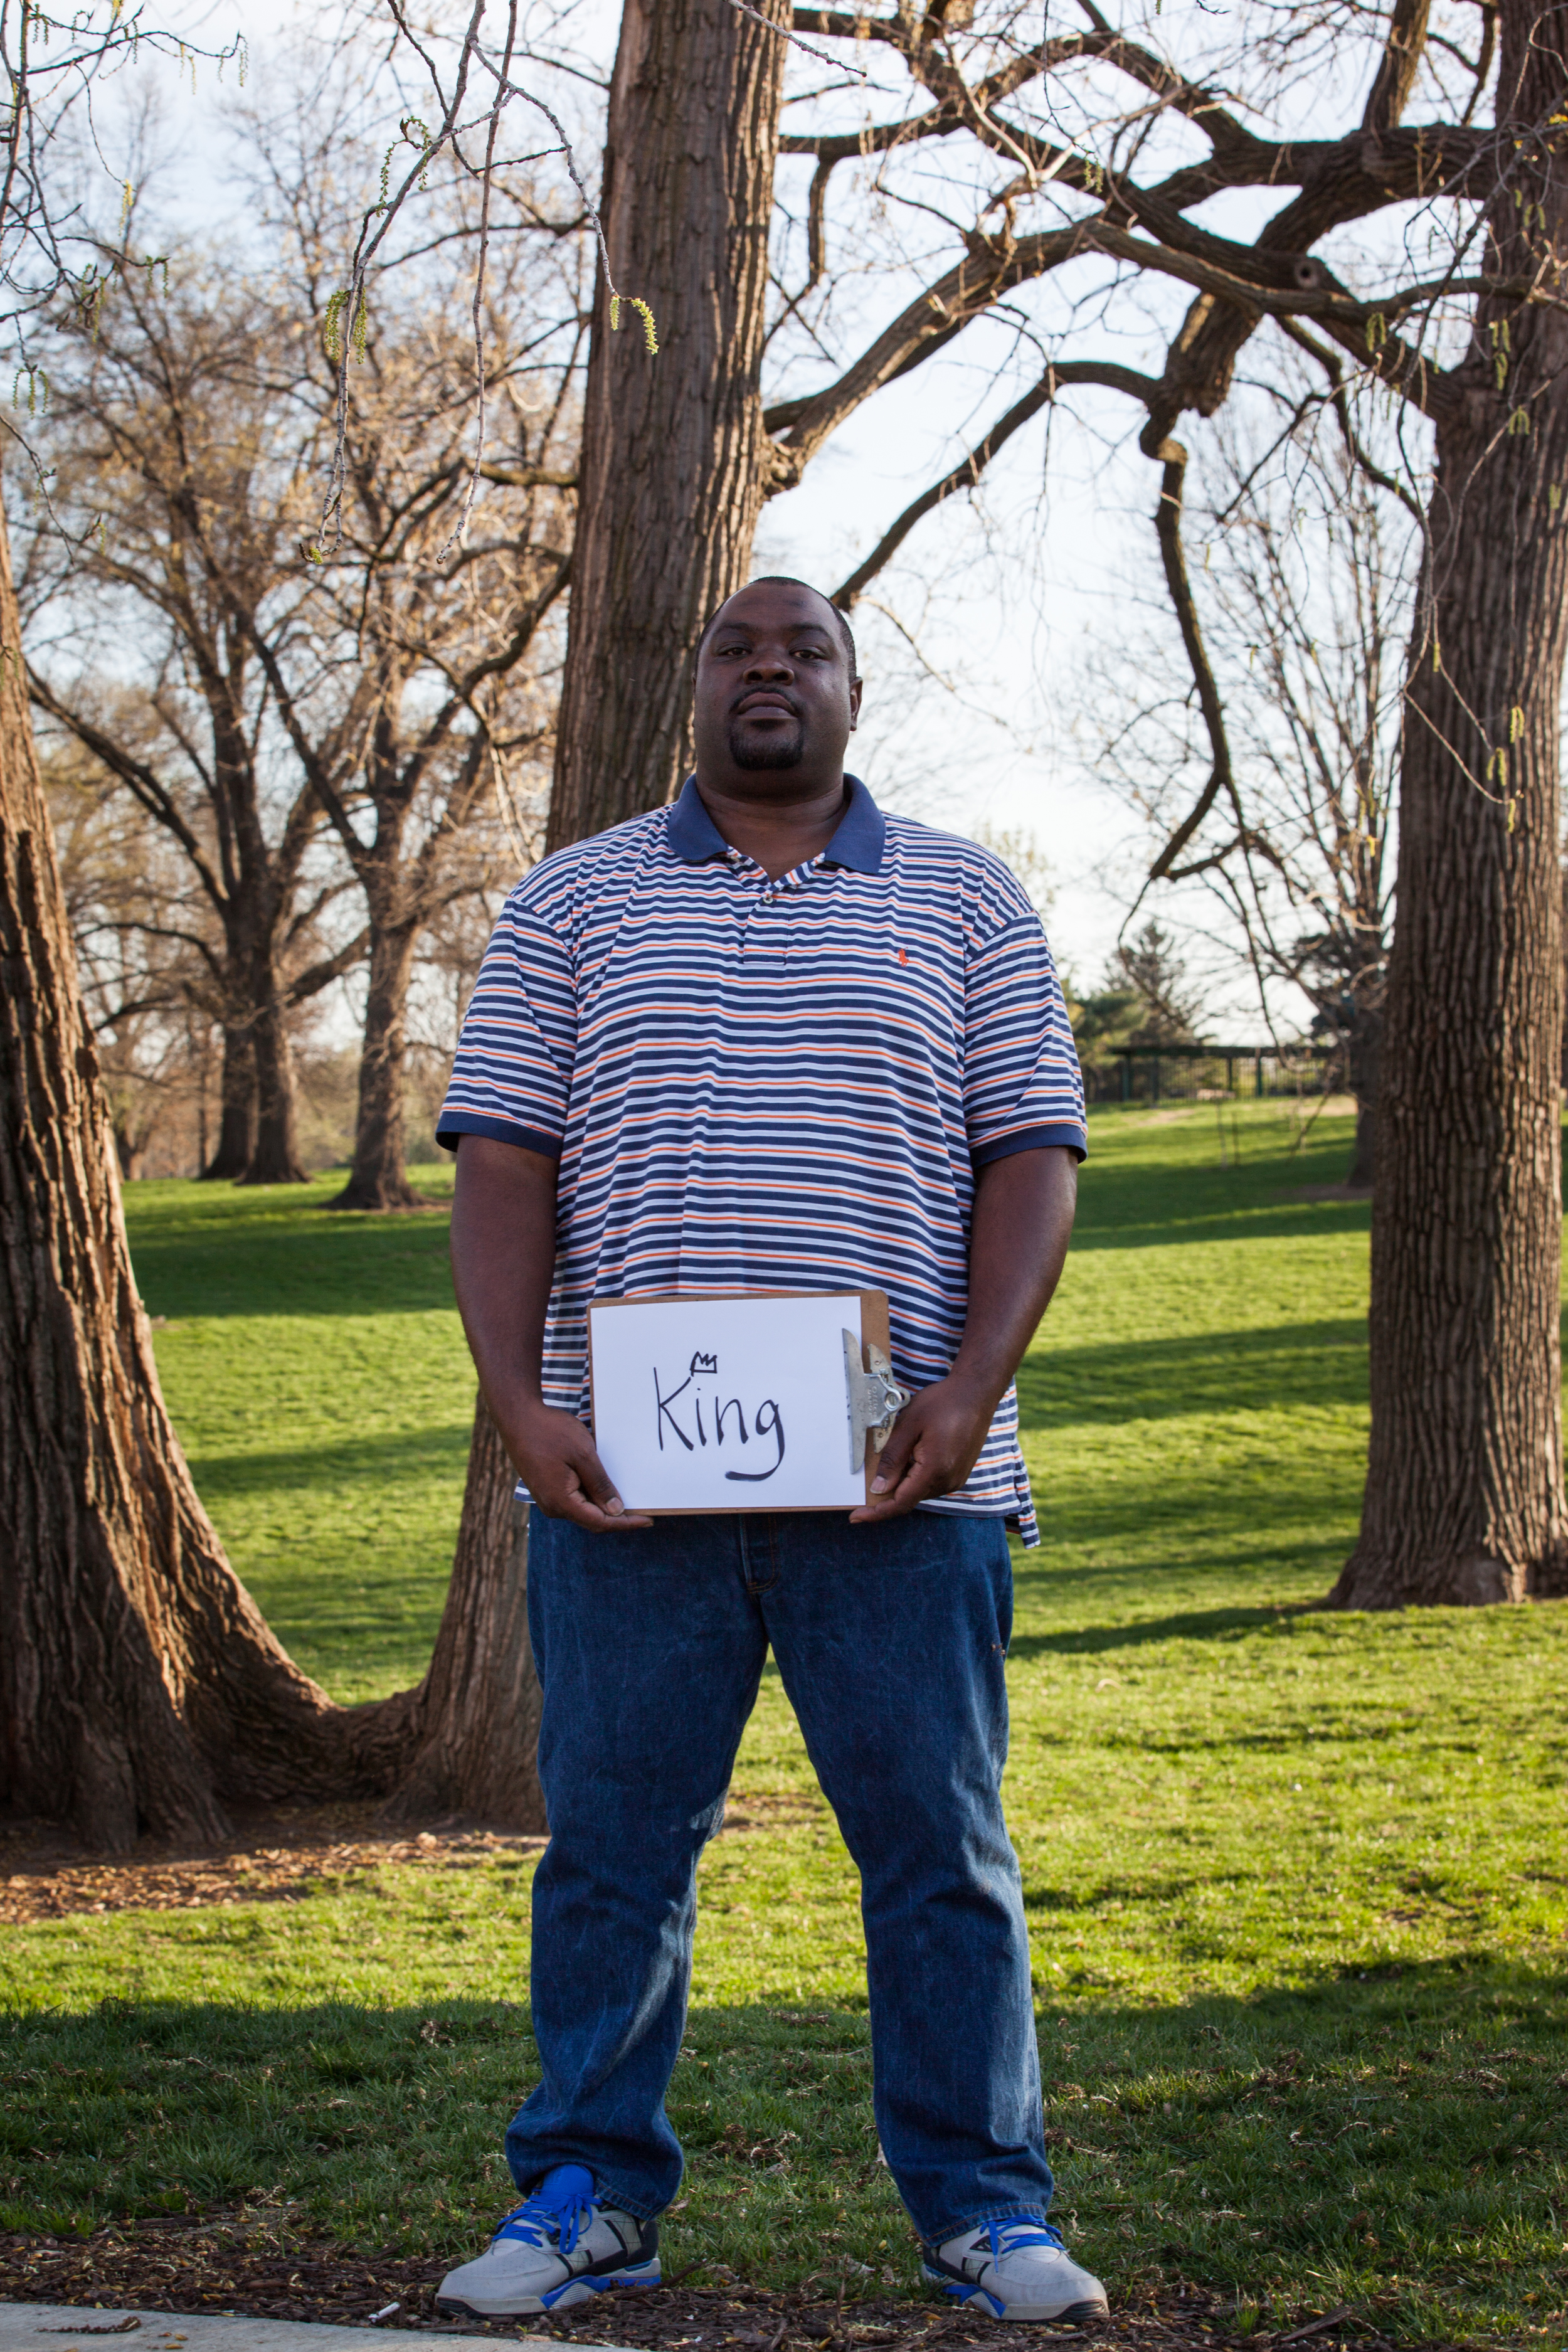 Man holding a sign that says king.